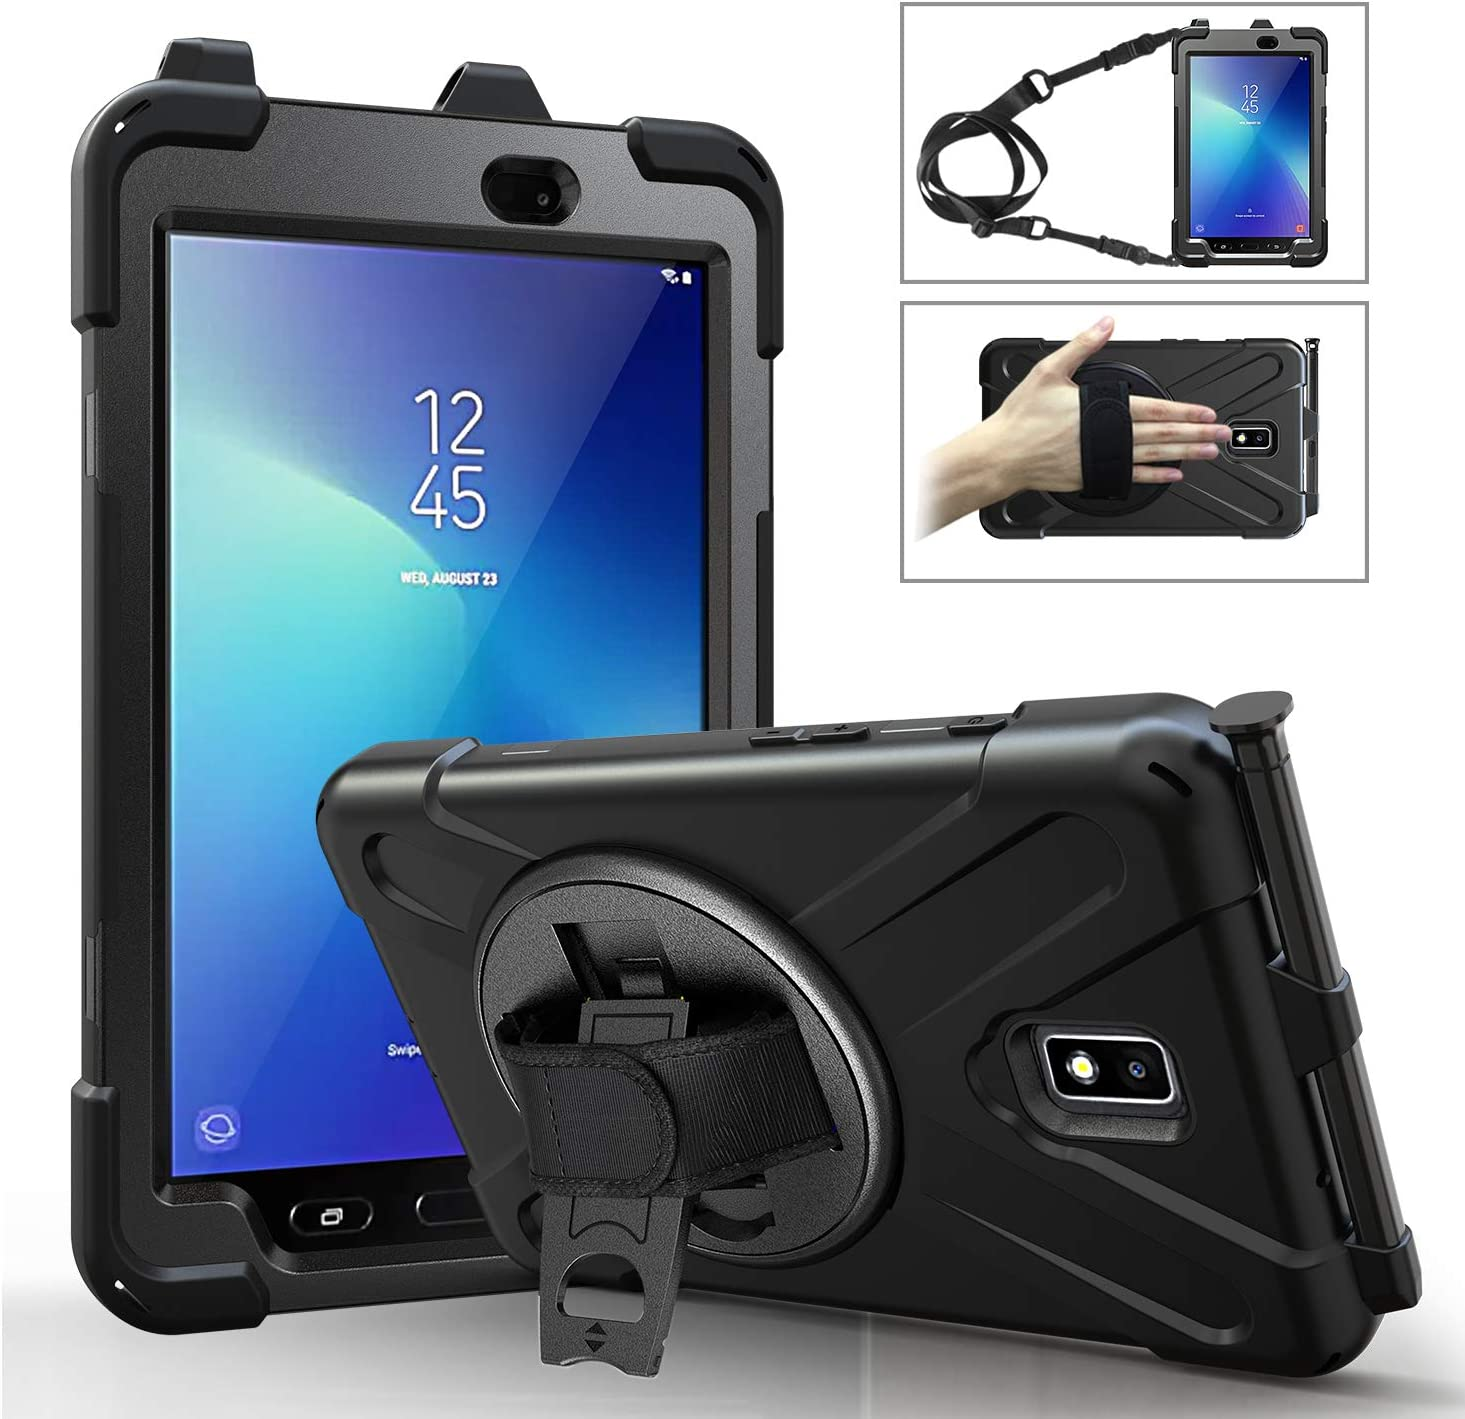 Moko Case Fit Samsung Galaxy Tab Active 2 8.0, Heavy Duty Shockproof Full-Body Rugged 360 Degree Rotating with Shoulder Strap Stand Cover for Galaxy Tab Active 2 8